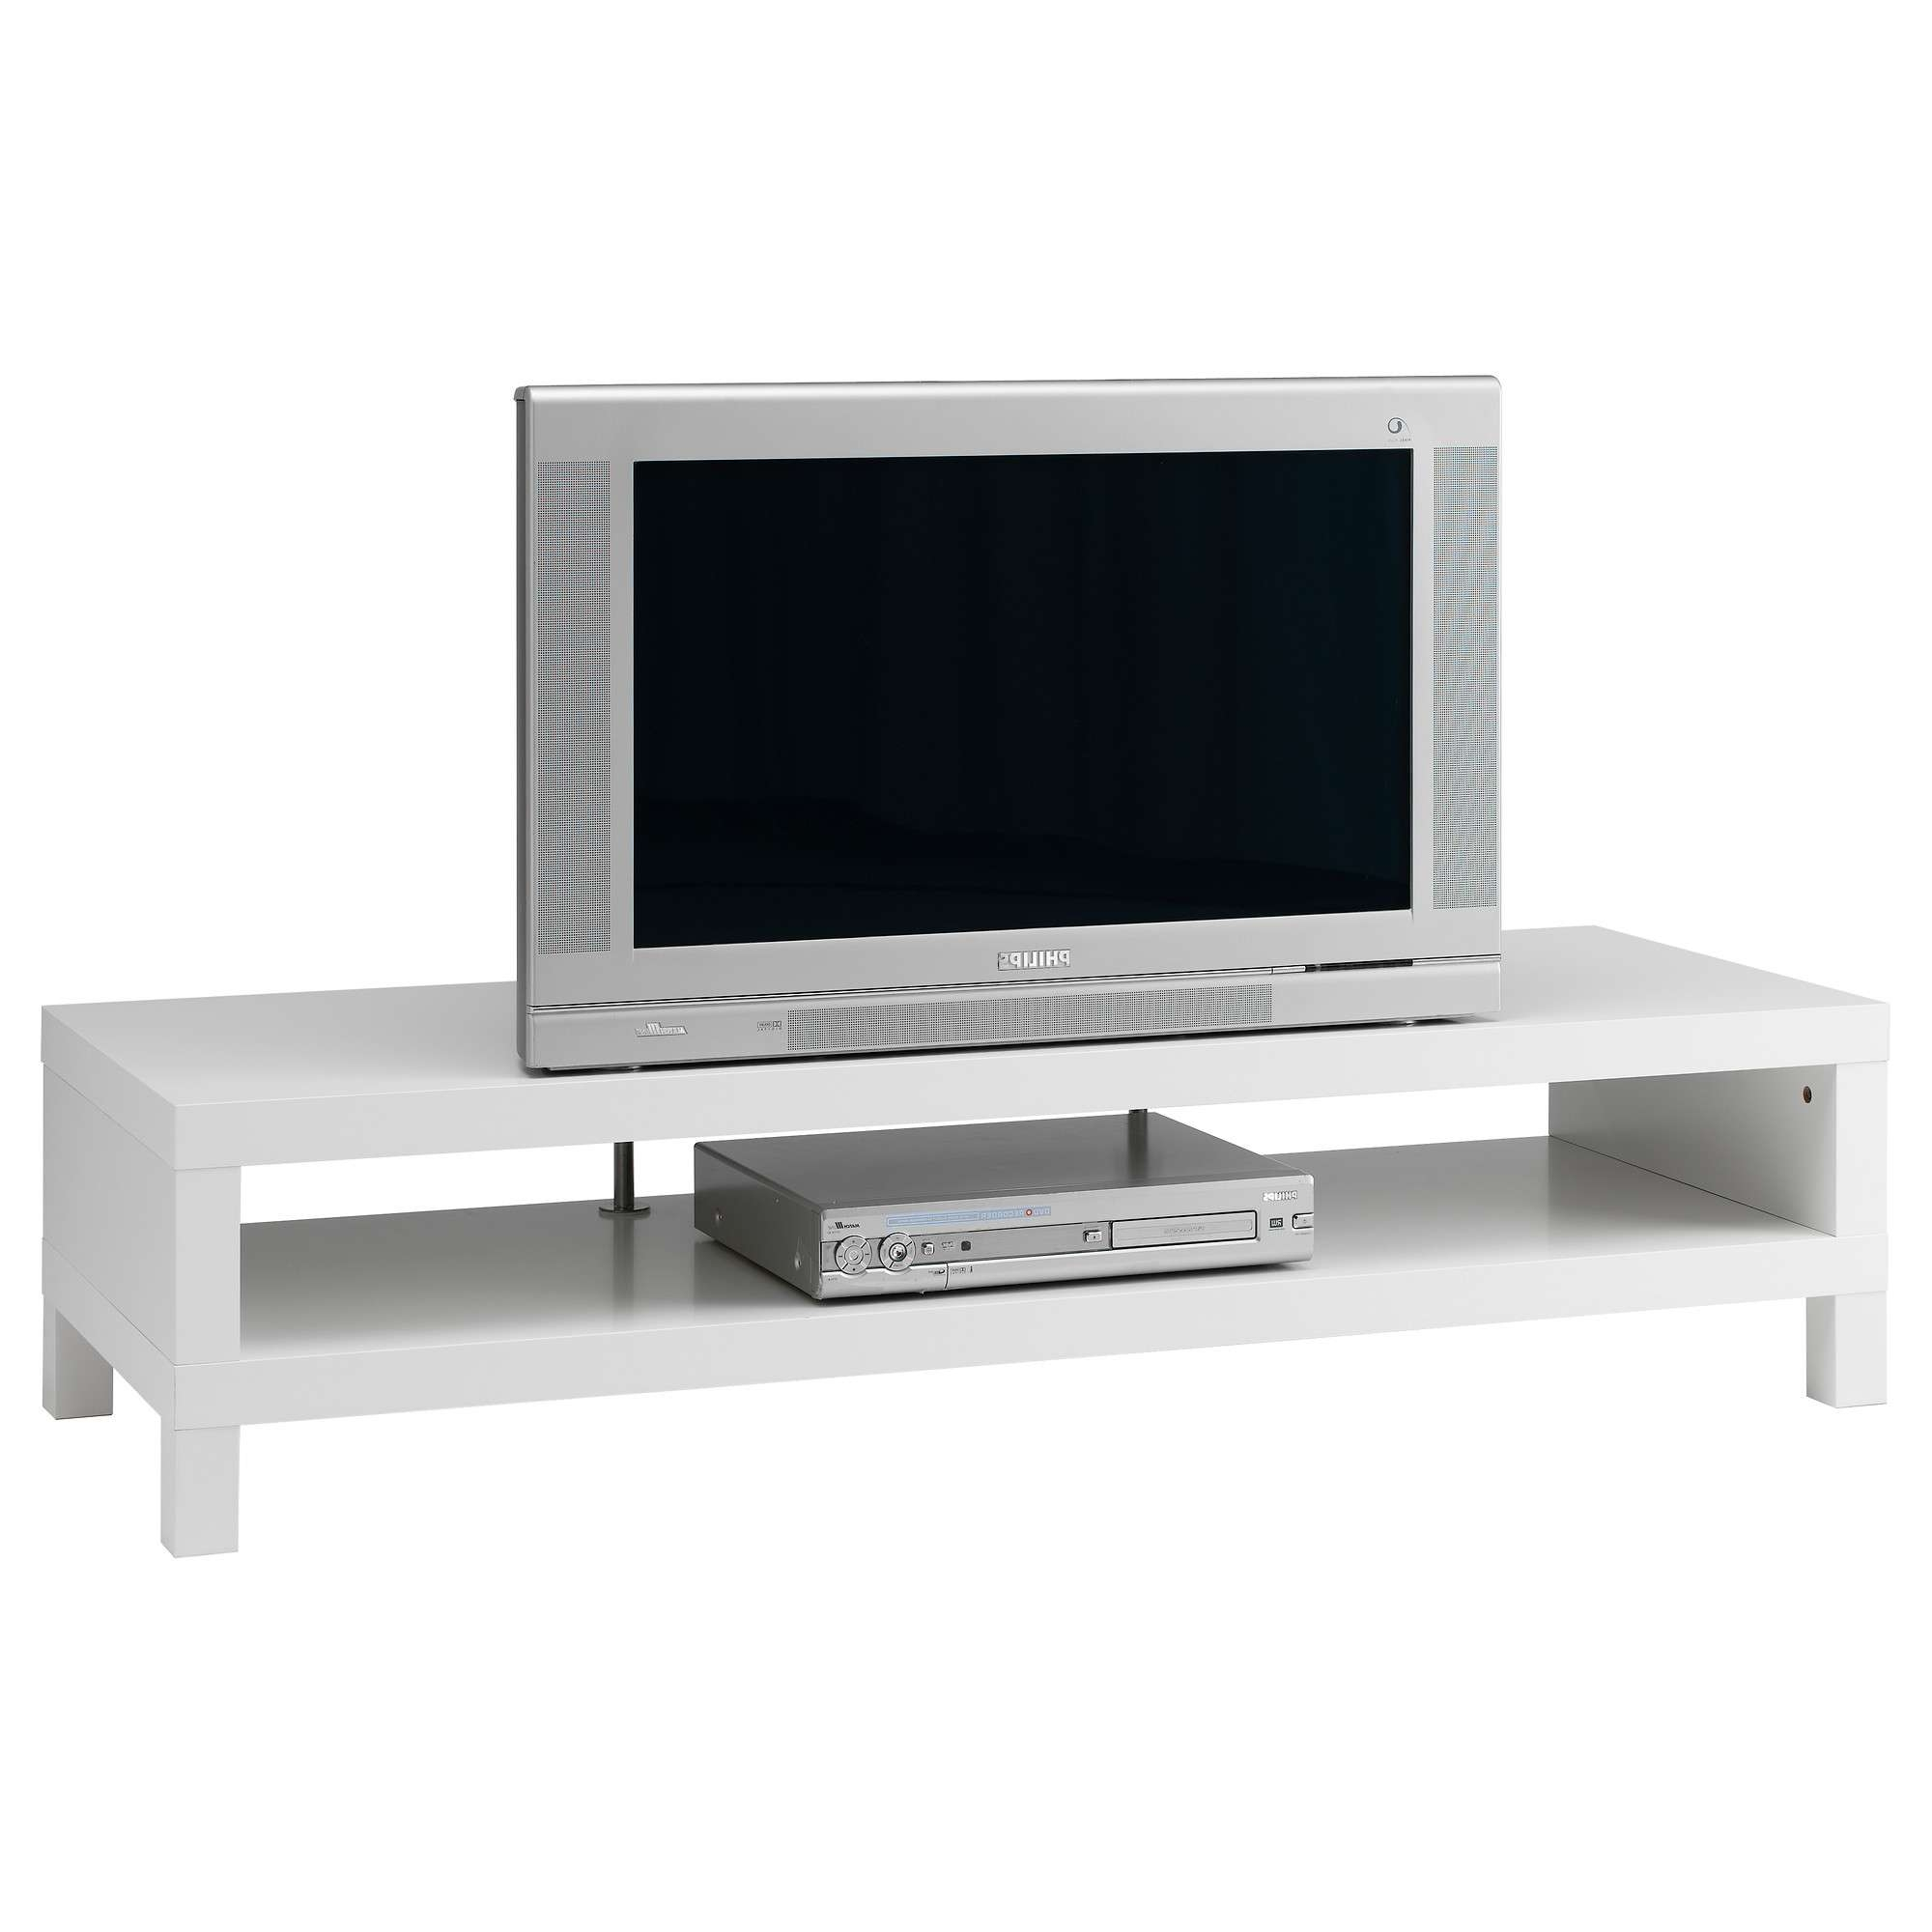 Lack Tv Bench White 149x55 Cm – Ikea With Regard To Bench Tv Stands (View 3 of 15)